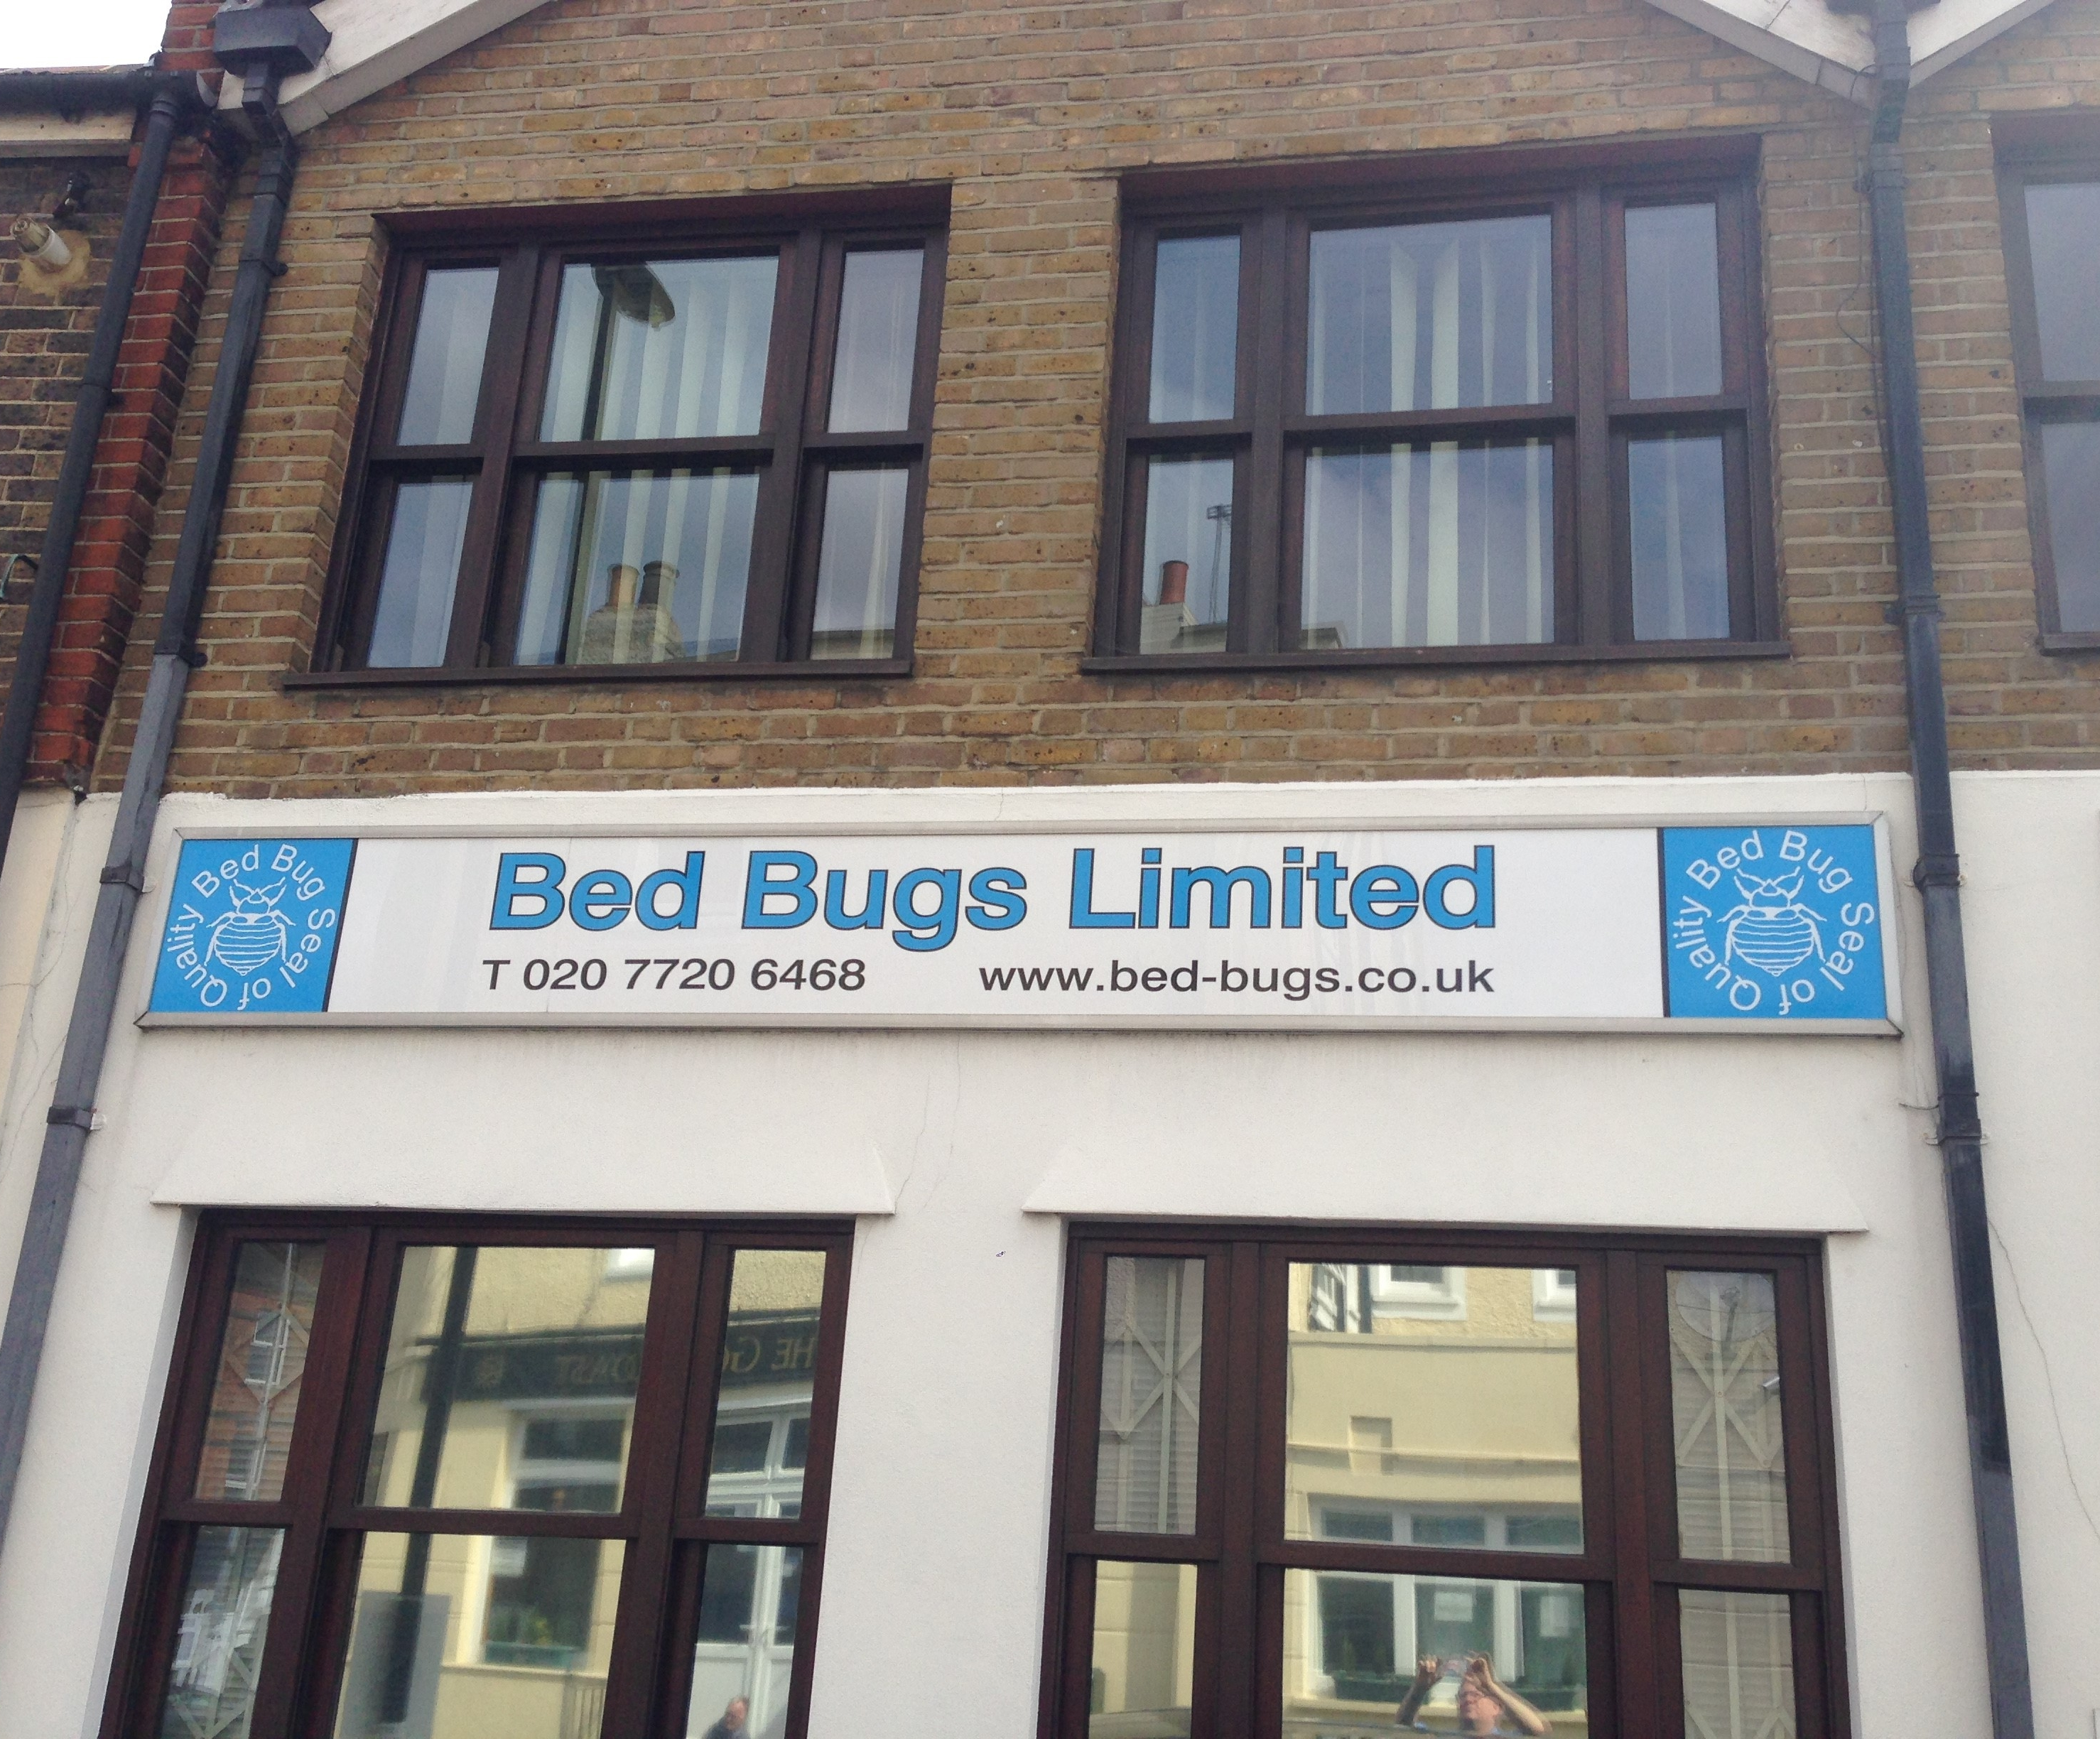 Bed Bugs Office outside view